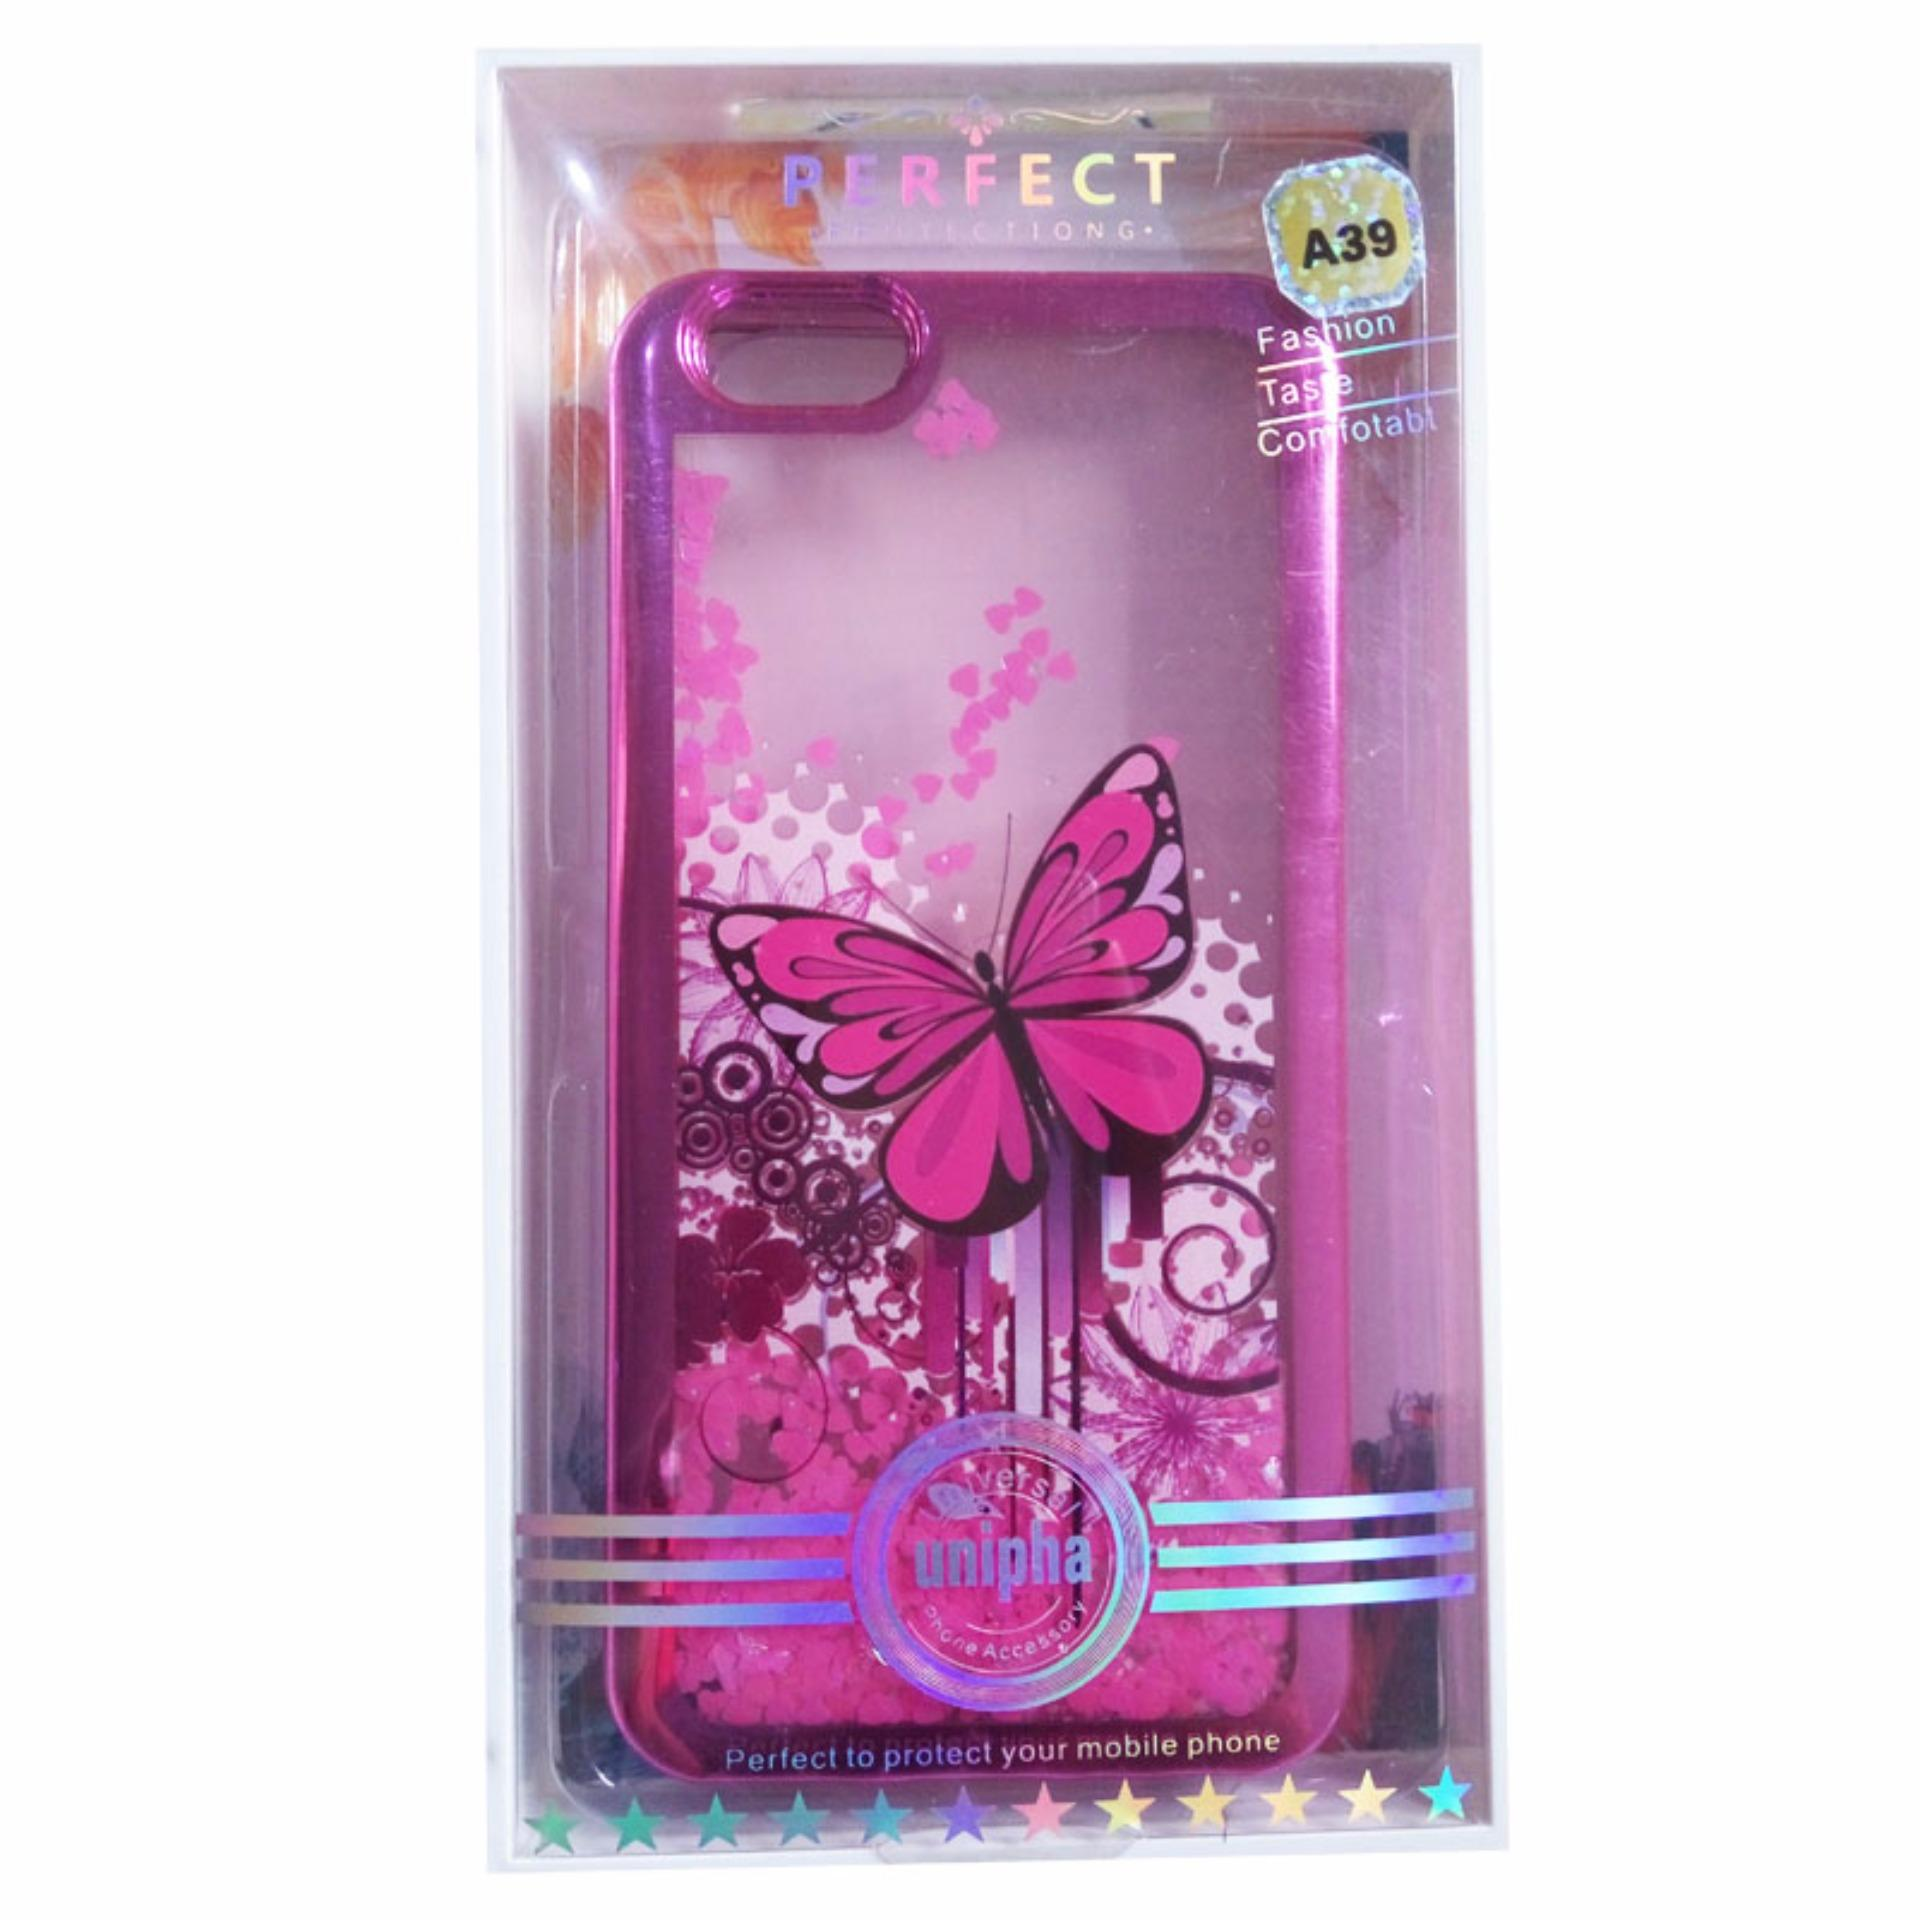 Lucky Chanel Softcase Glitter Perfect Water Untuk Iphone 5g New Source · Casing Oppo A39 Softcase Water Glitter Referensi Daftar Bcs Fashion Printing Phone ...